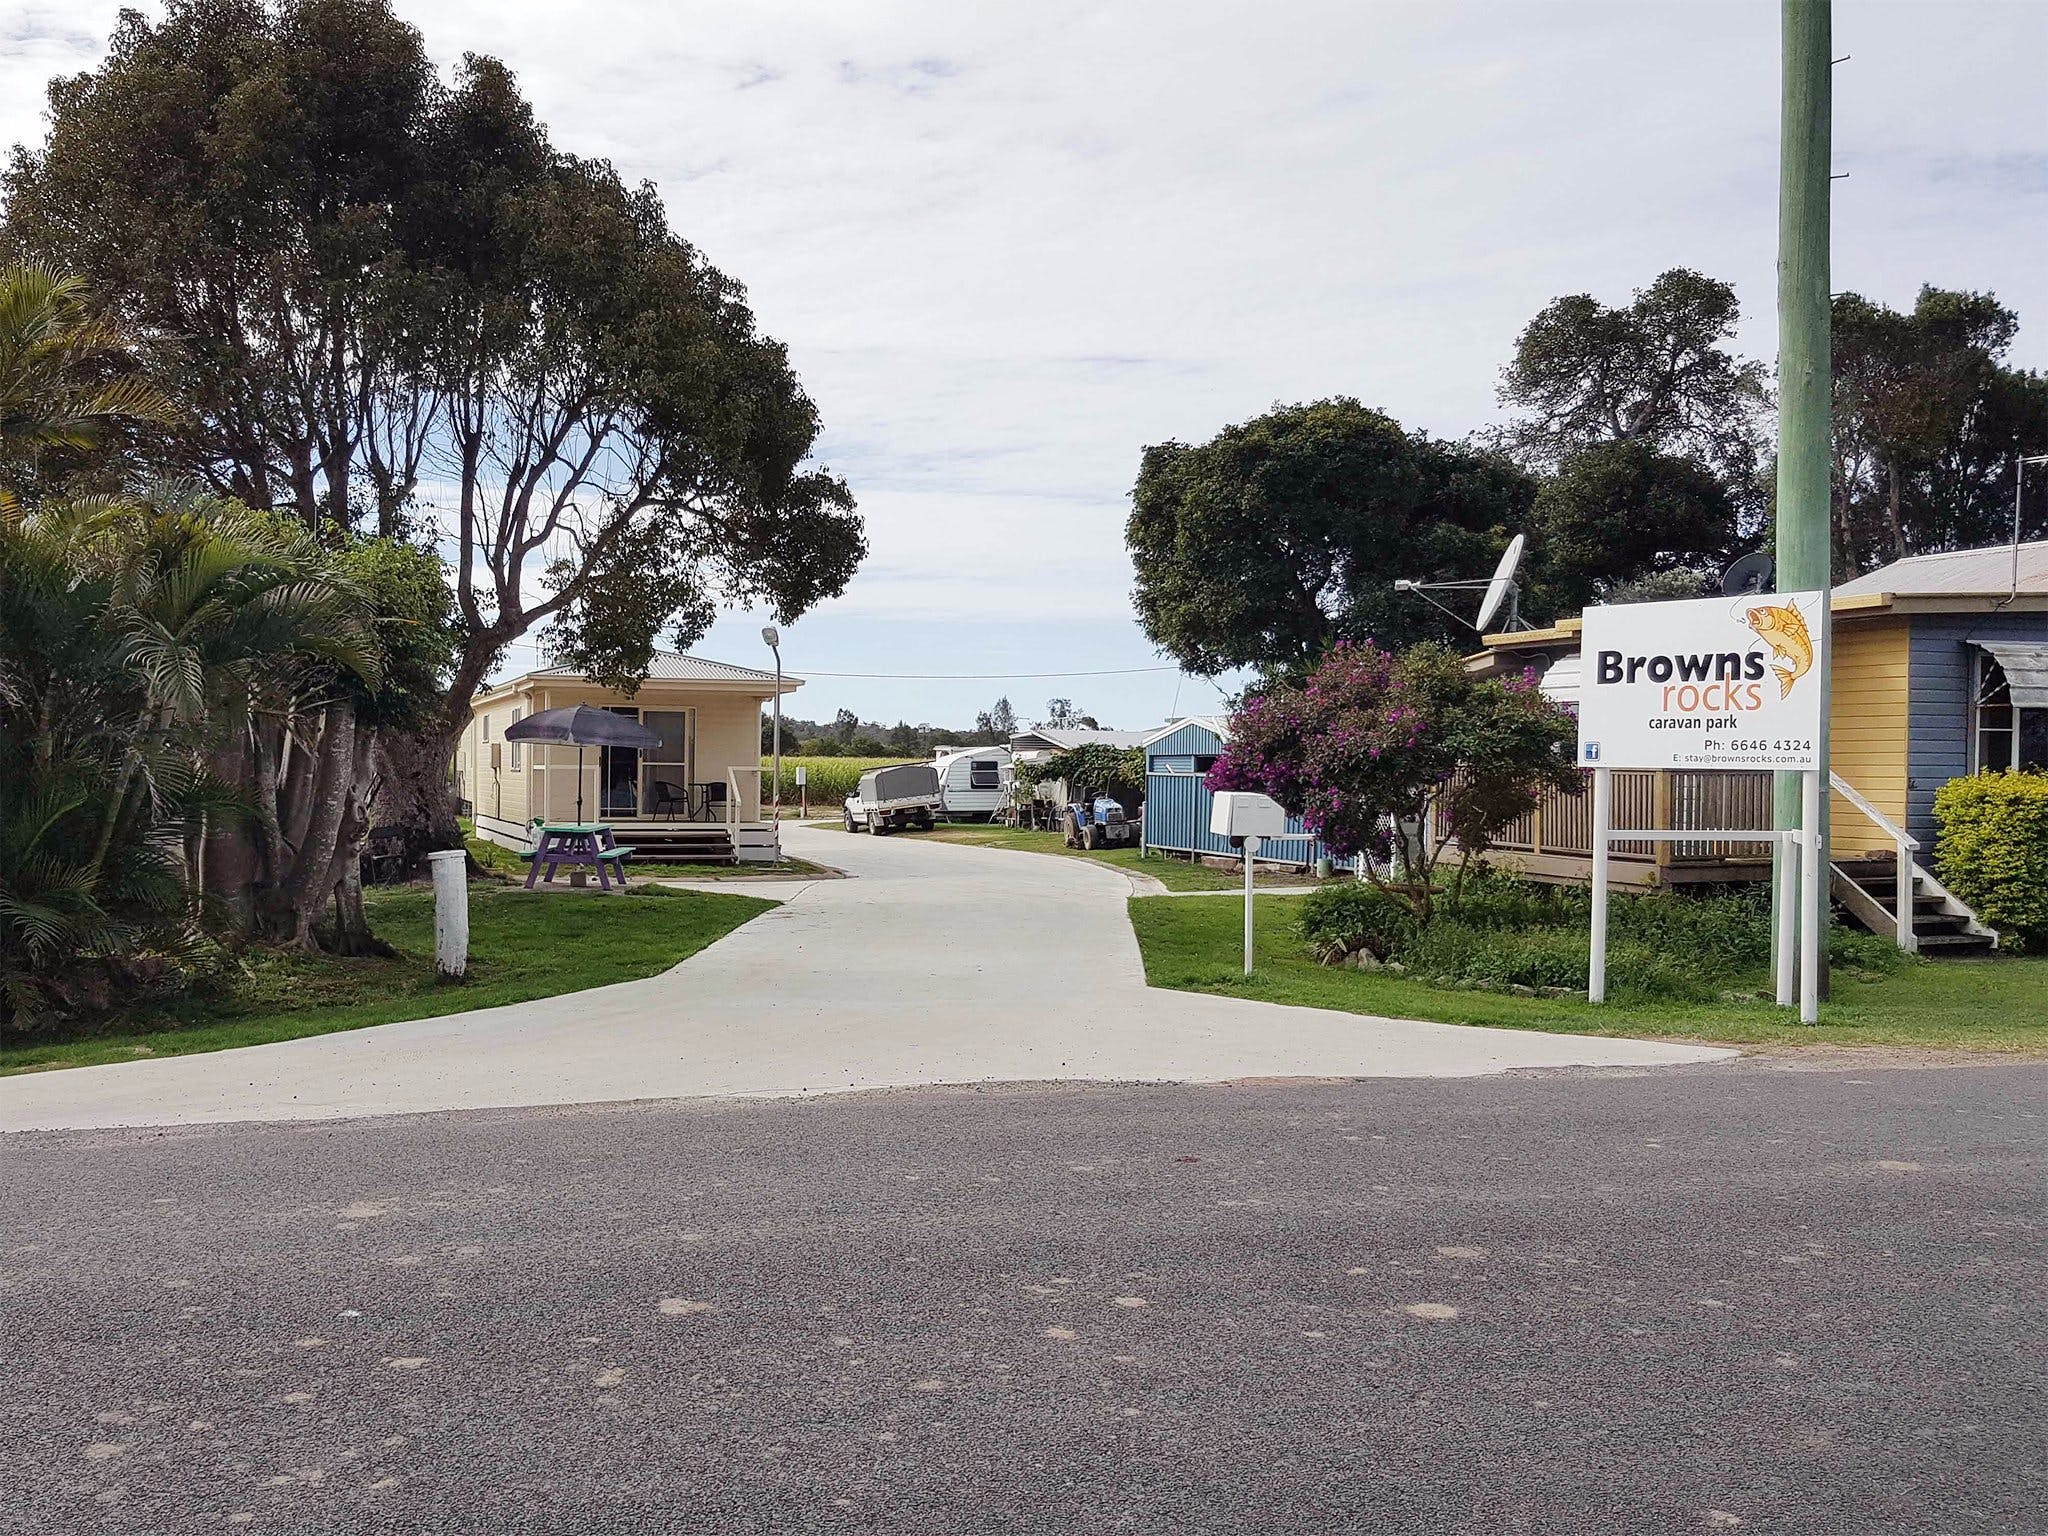 Browns Rocks Caravan Park - Accommodation in Brisbane